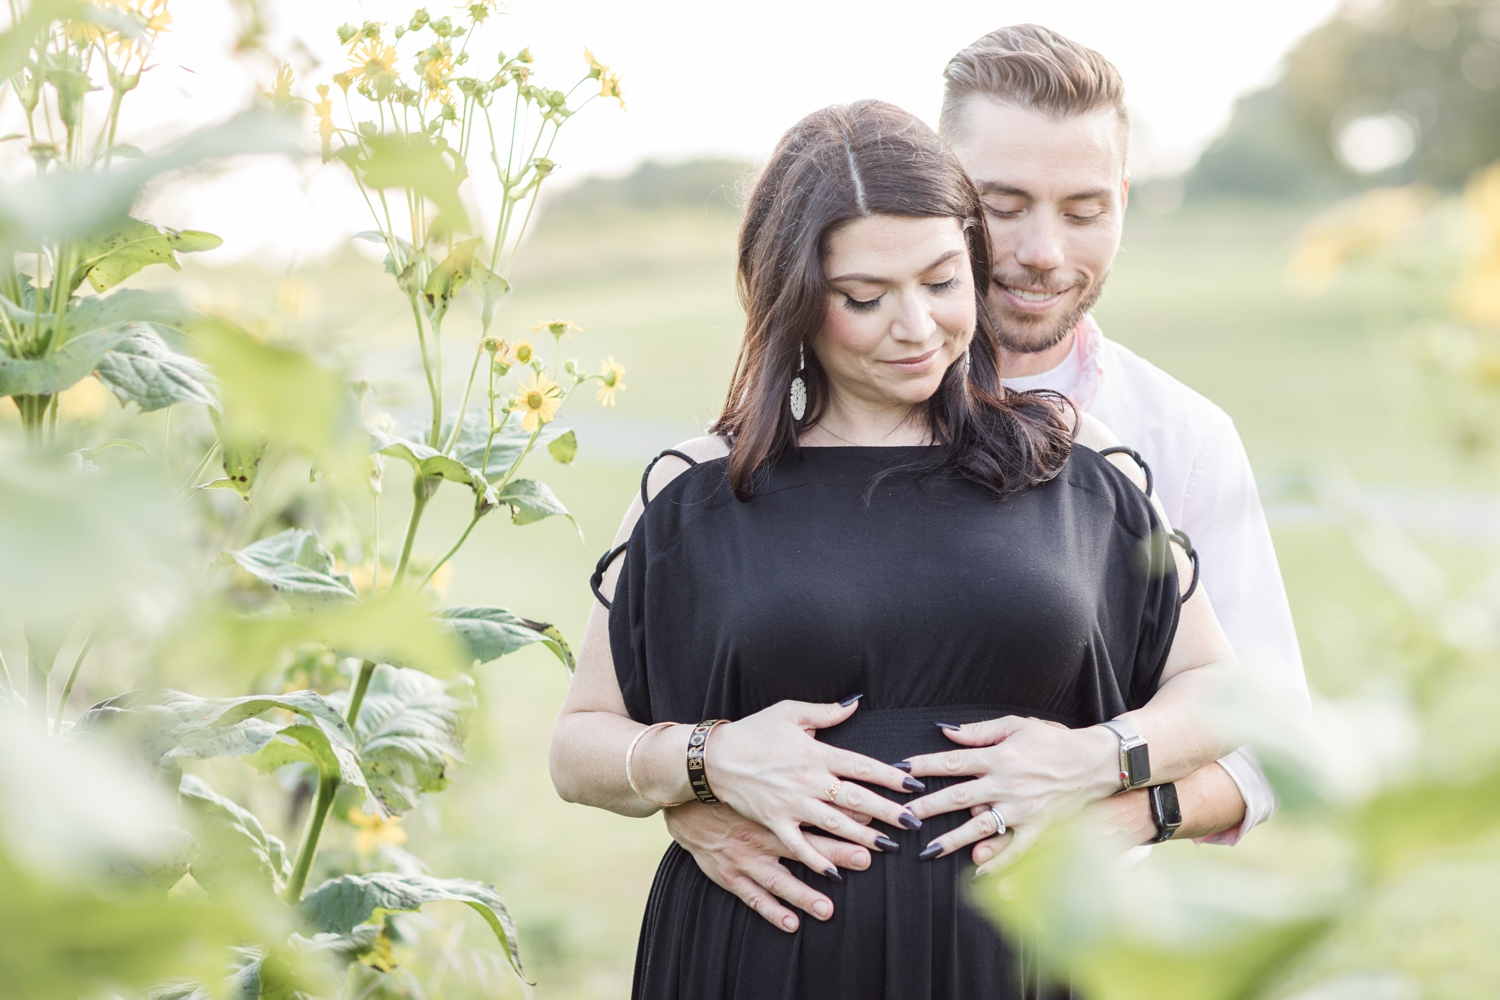 Saunders-Consroe Maternity-105_Cromwell-Valley-Park-Maryland-maternity-photographer-anna-grace-photography-photo.jpg